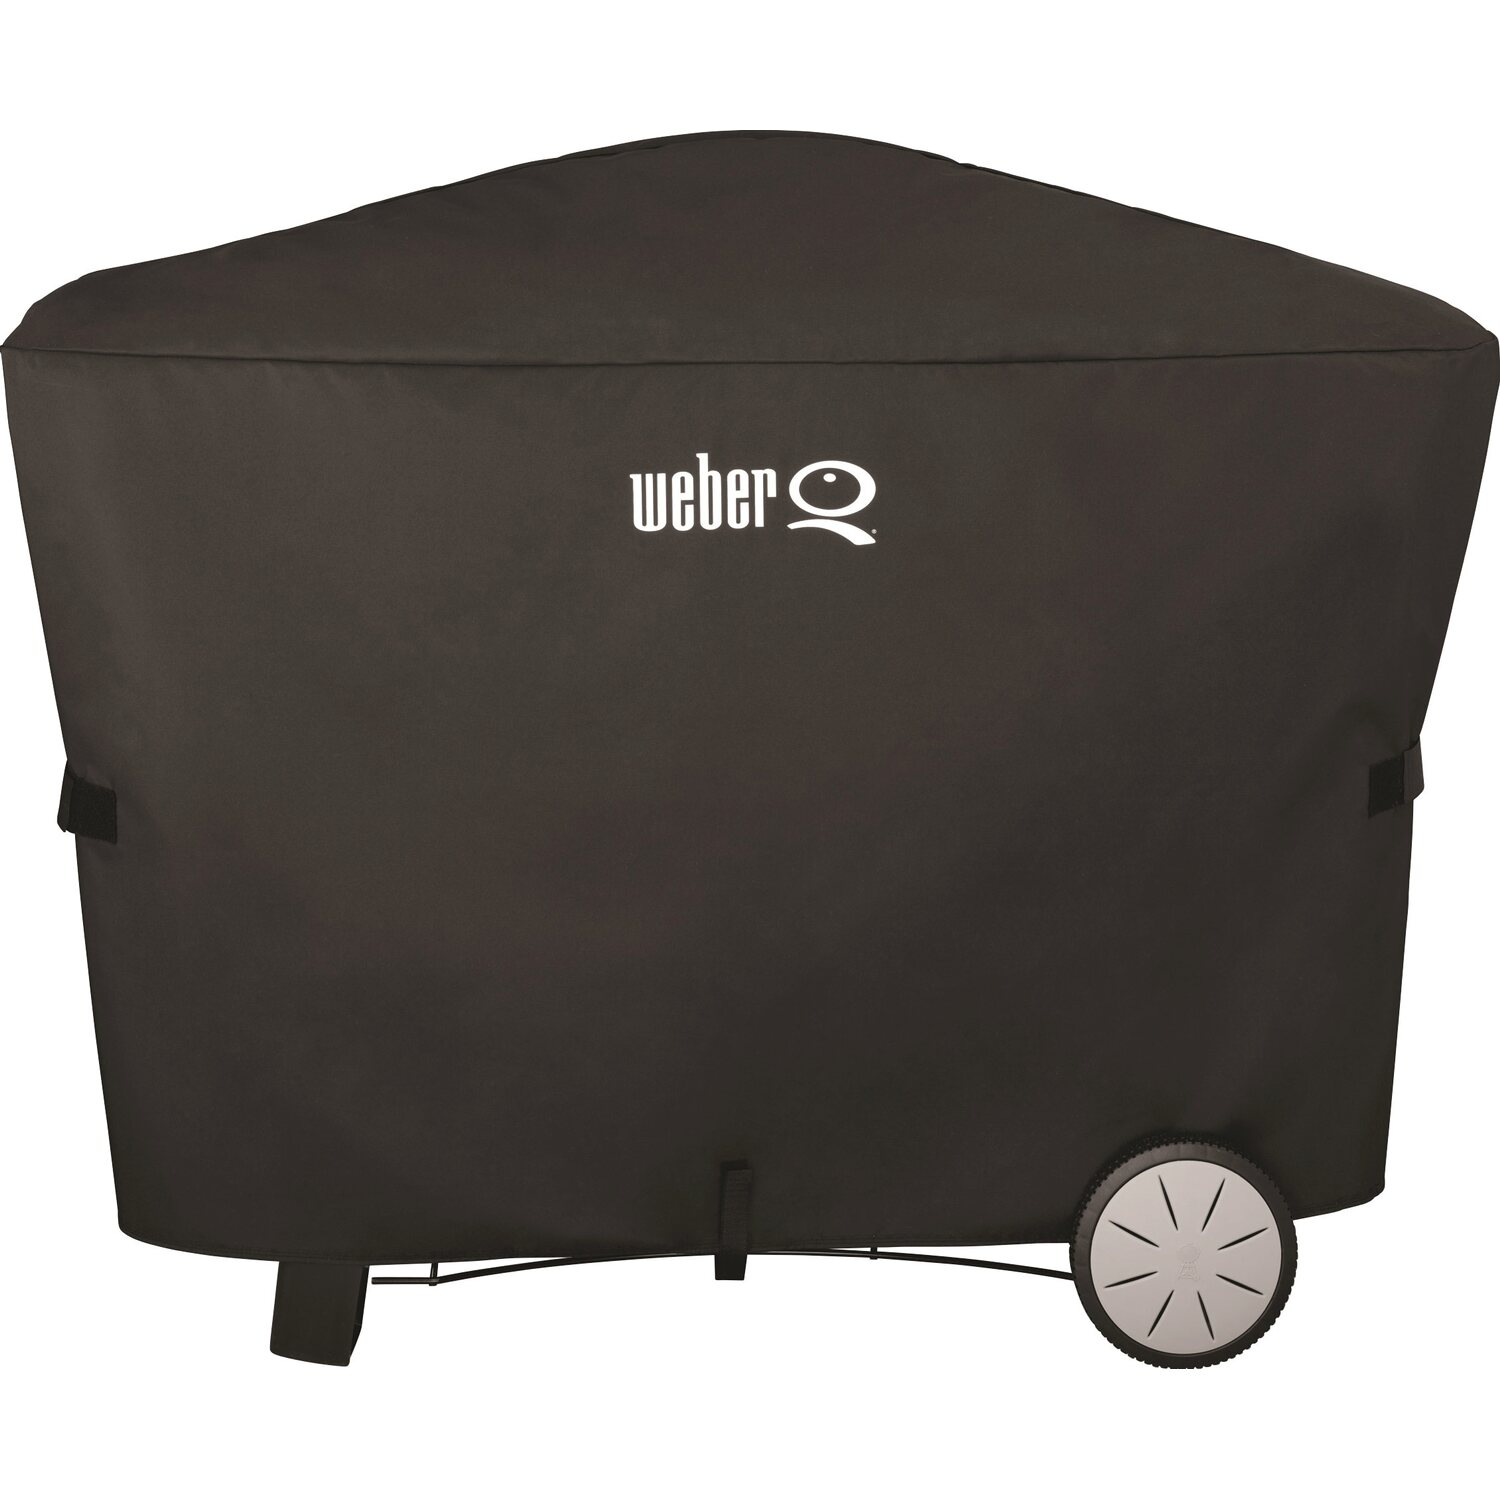 abdeckung weber grill spirit with abdeckung weber grill spirit weber grill abdeckhaube weber. Black Bedroom Furniture Sets. Home Design Ideas